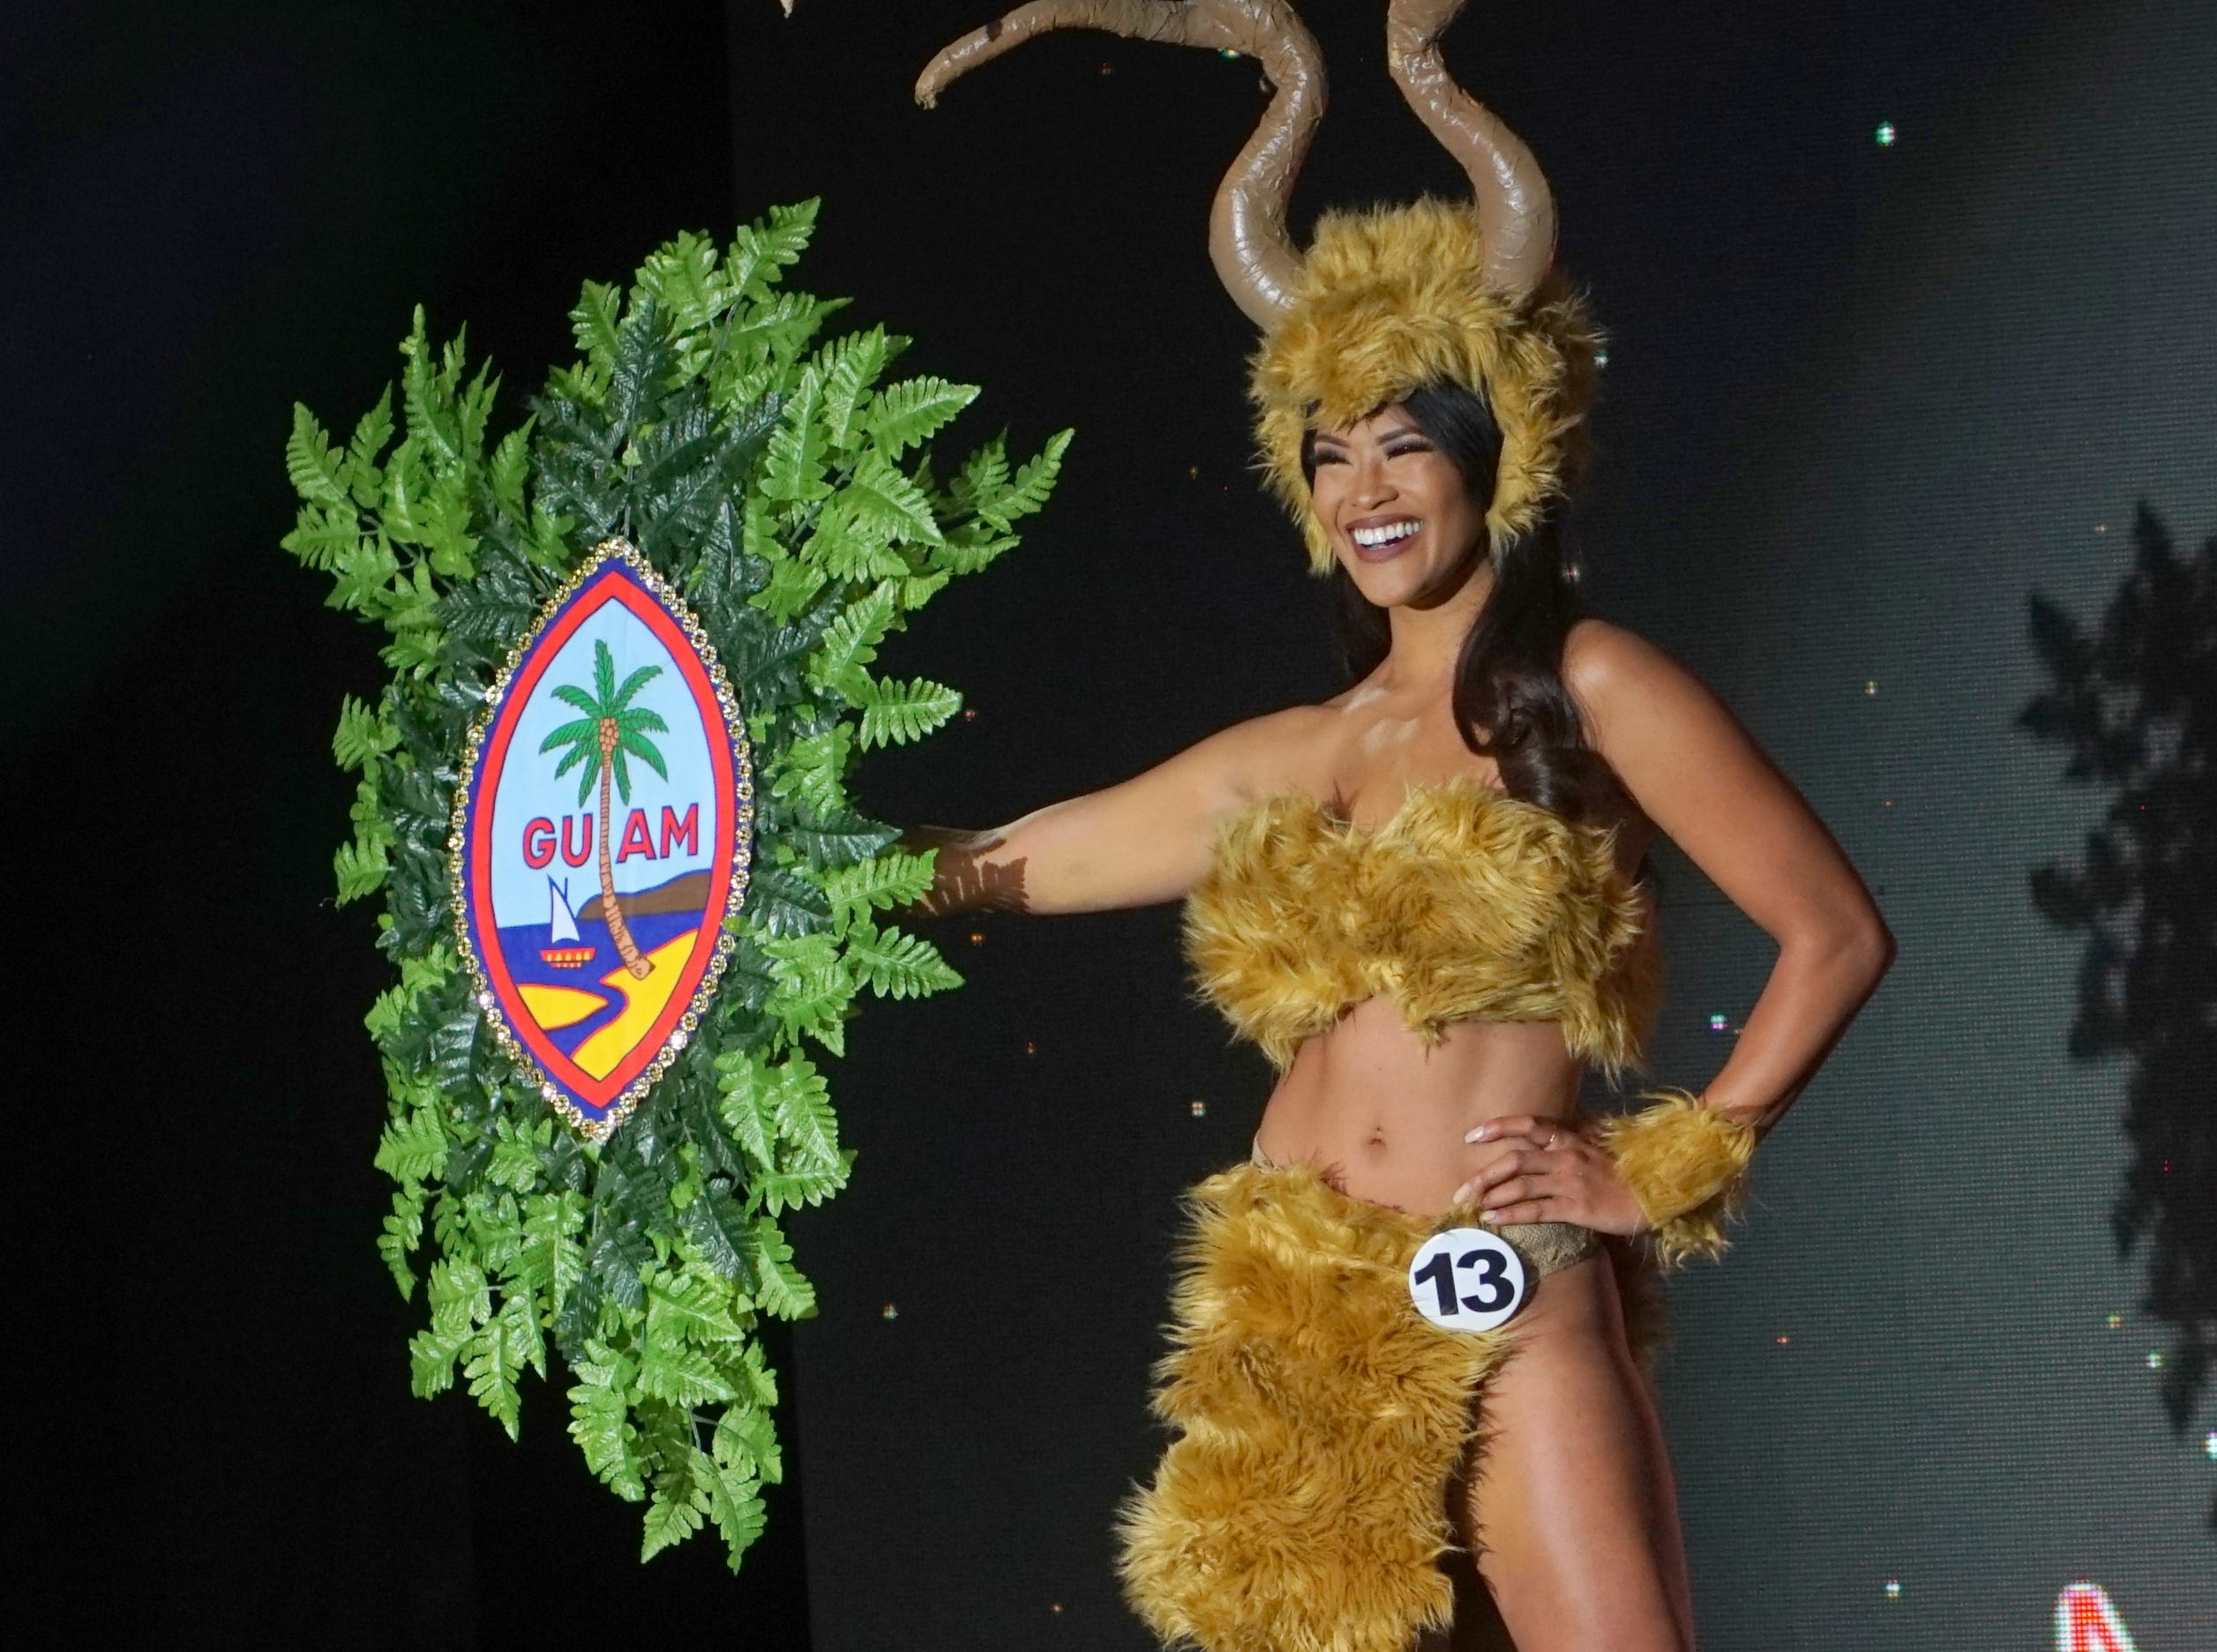 Native Costume portion of the Miss Universe Guam pageant.  Contestant 13 Keshia Llarenas.  The pageant was held at  Sheraton Laguna Guam Resort.